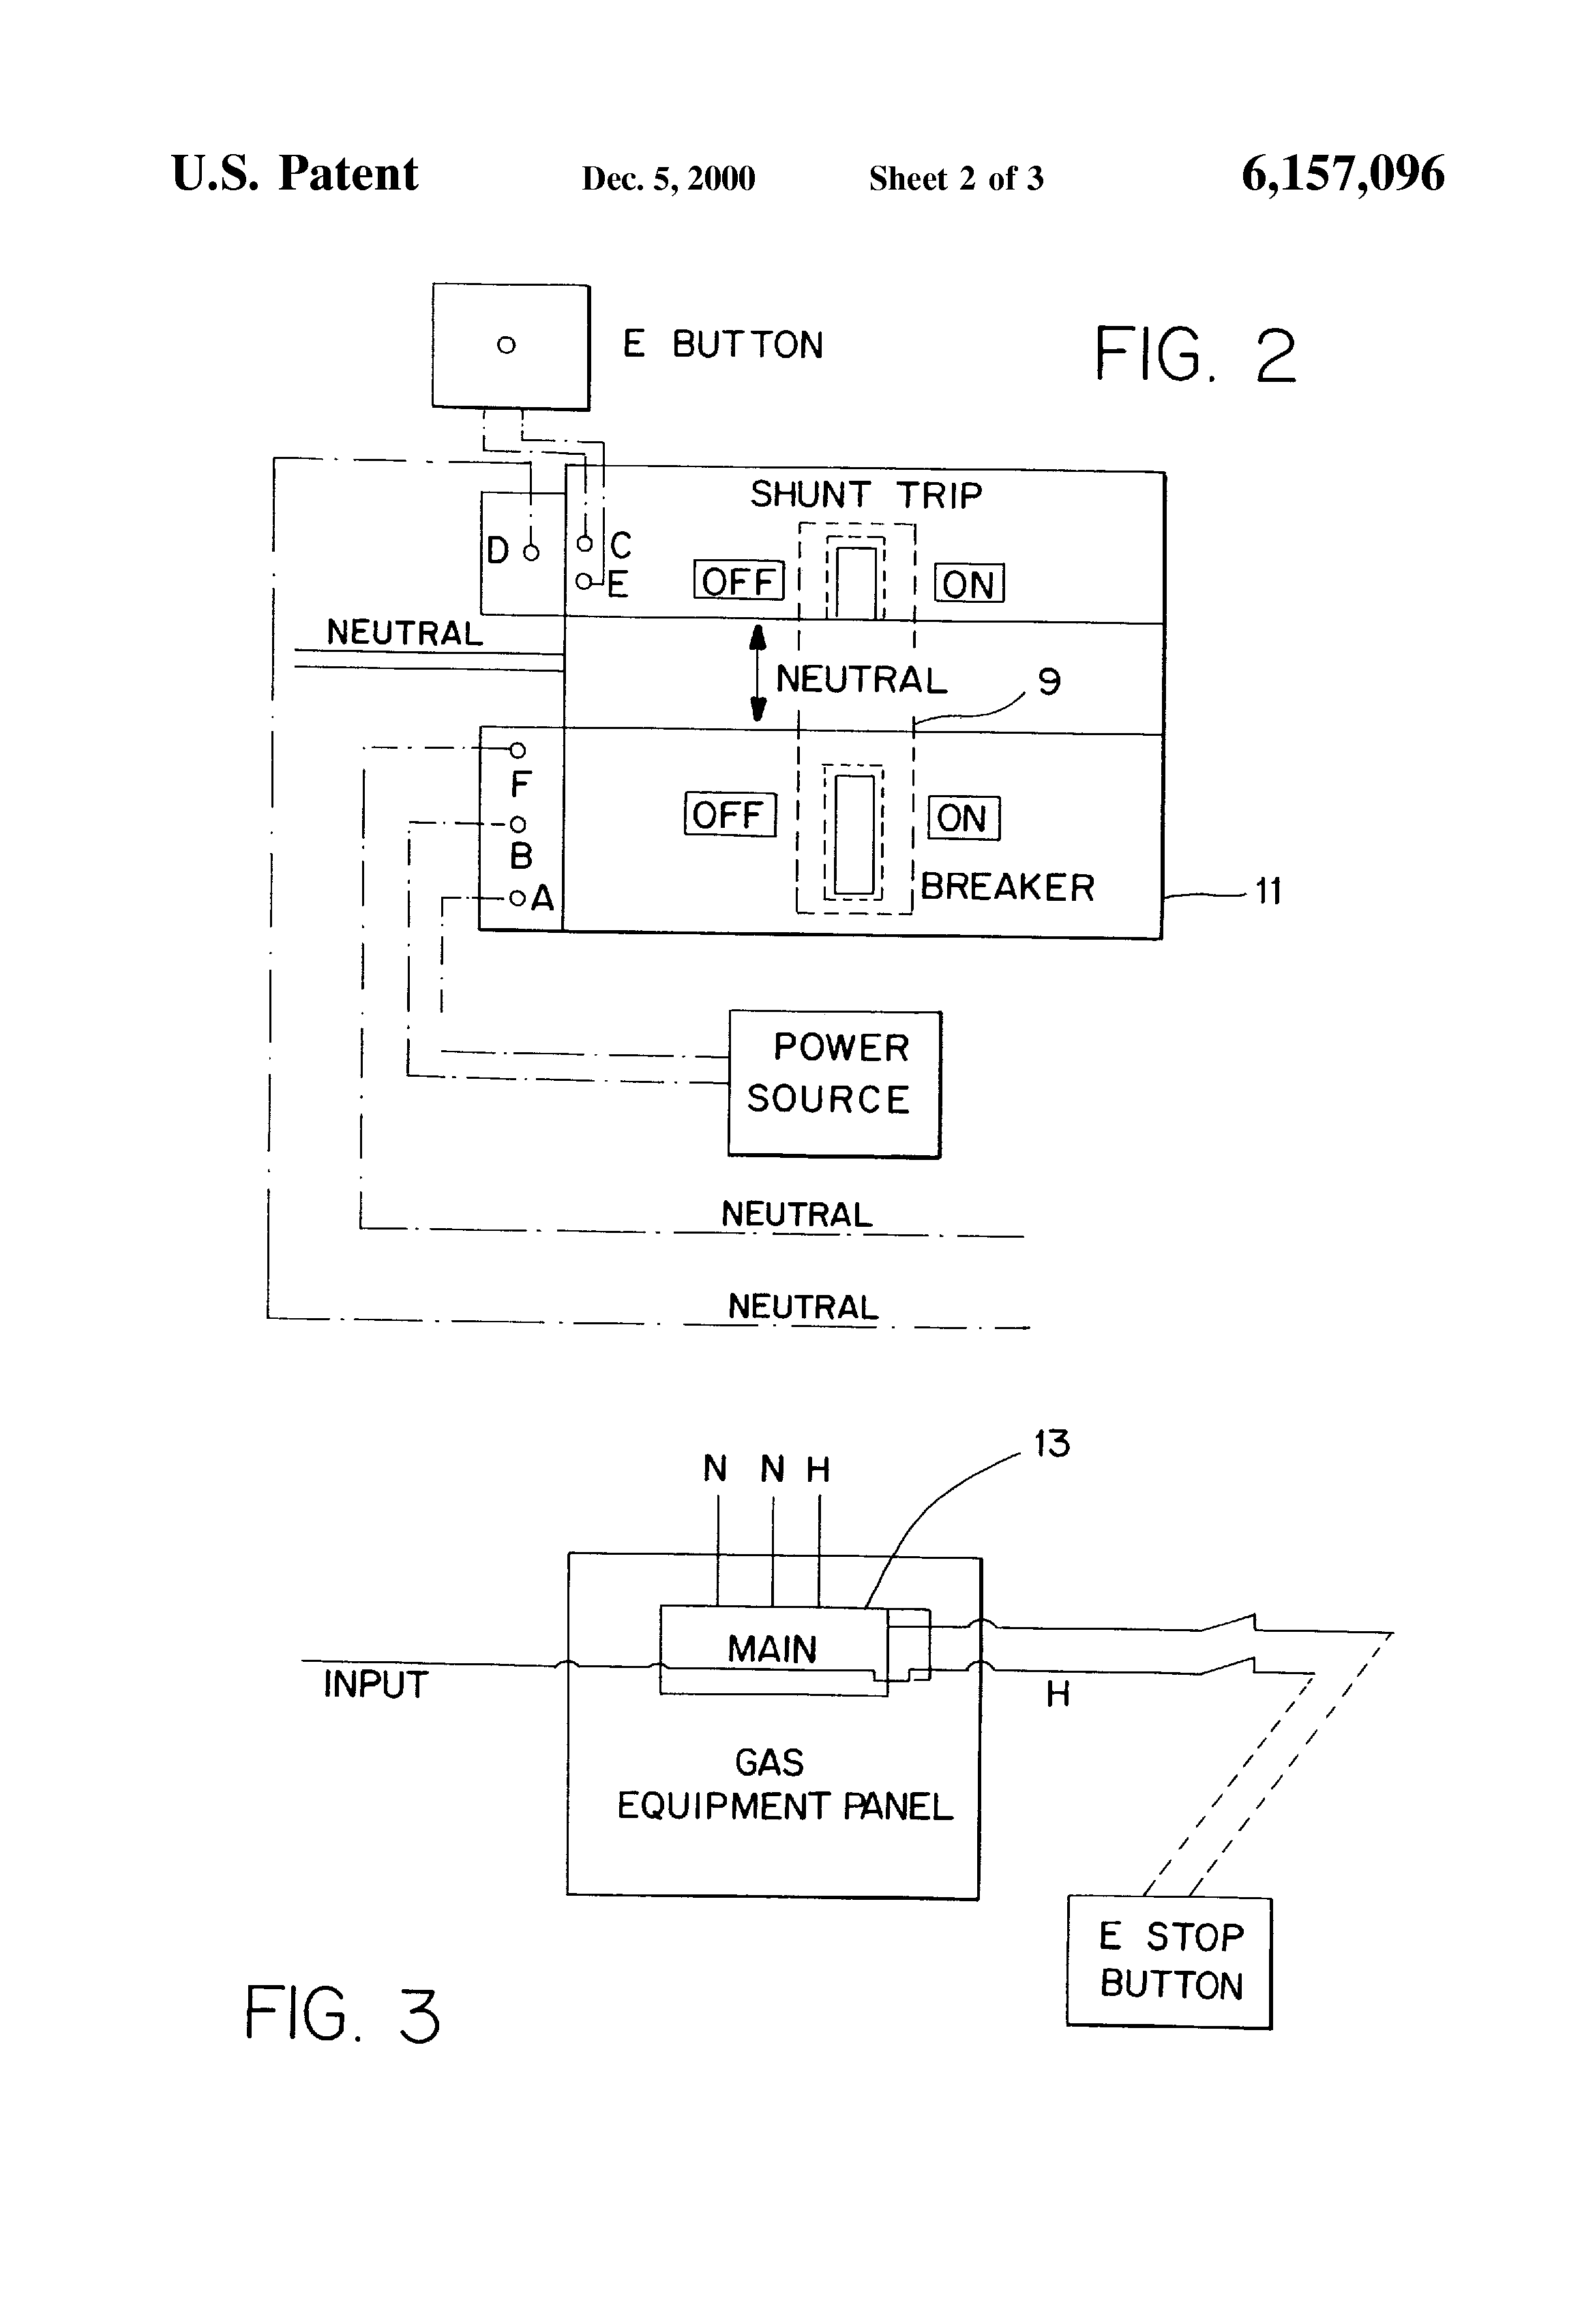 US6157096 2 patent us6157096 neutral switched shunt trip emergency gas panel square d shunt trip diagram at bayanpartner.co